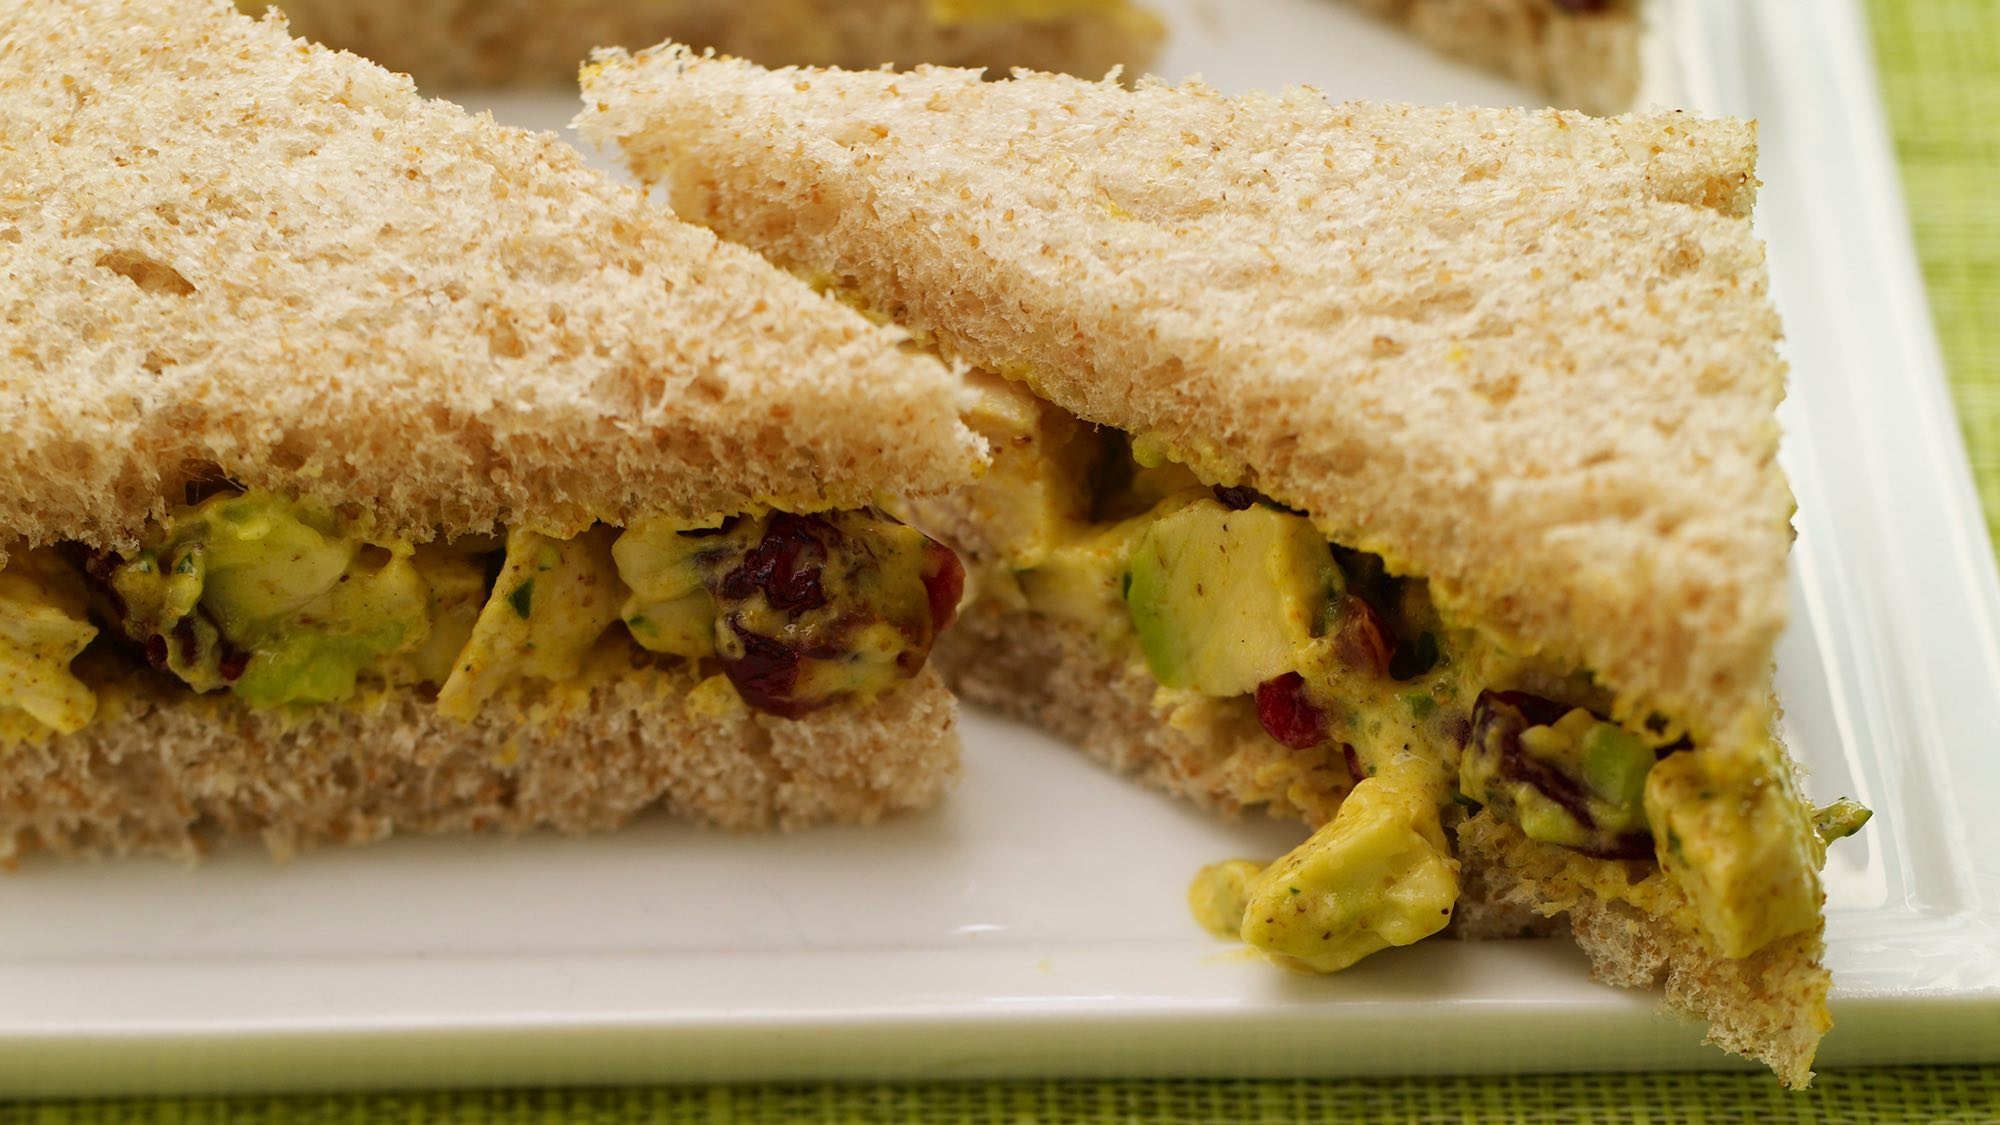 Avocado salad sandwich